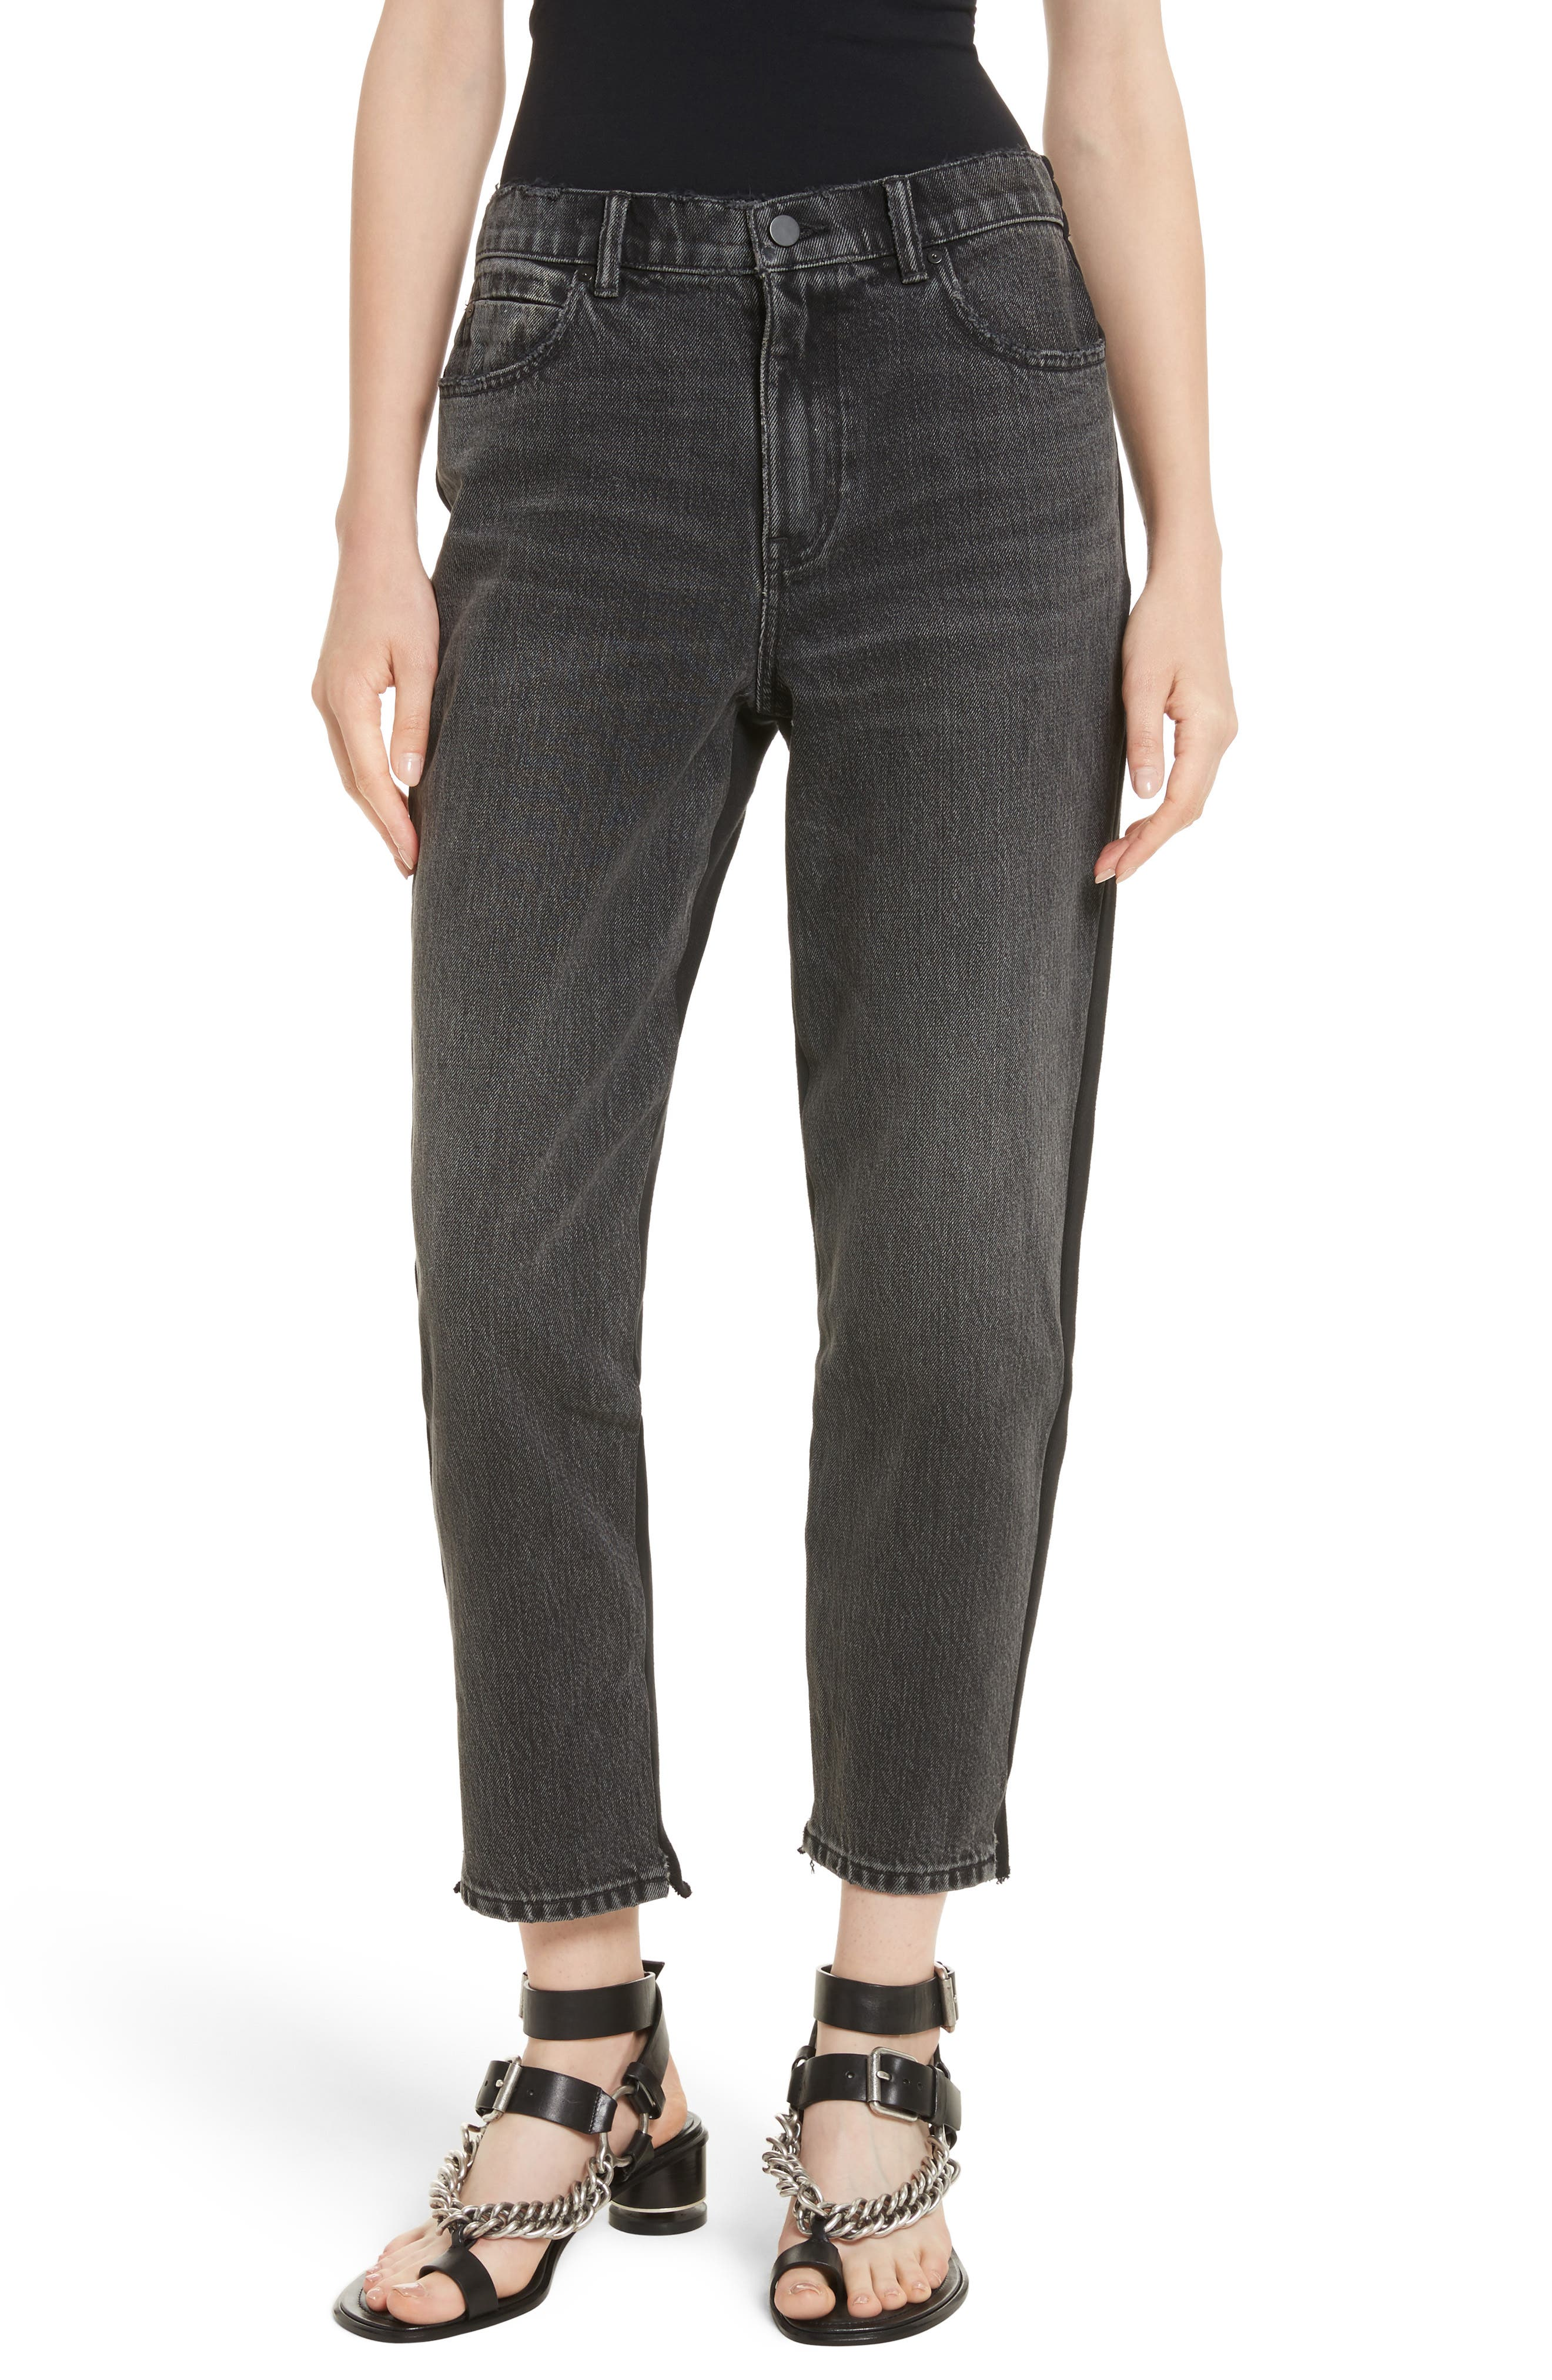 Alternate Image 1 Selected - T by Alexander Wang Hybrid Sweatpants Jeans